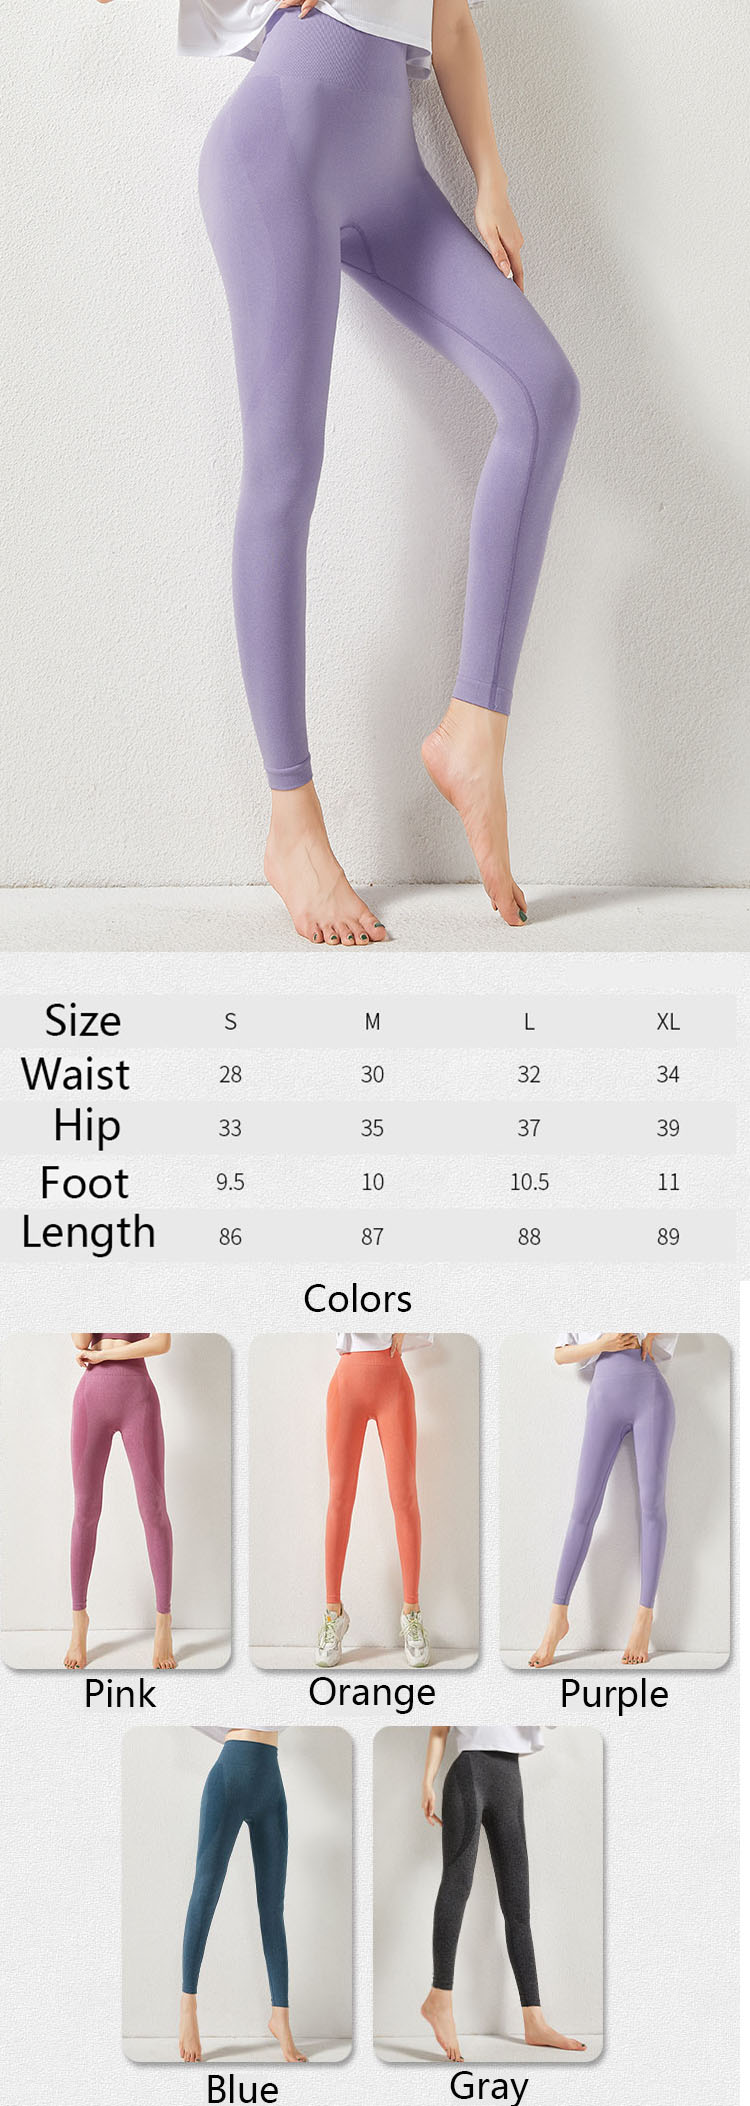 As an indispensable item in textured yoga pants, body shaping pants are becoming more and more important